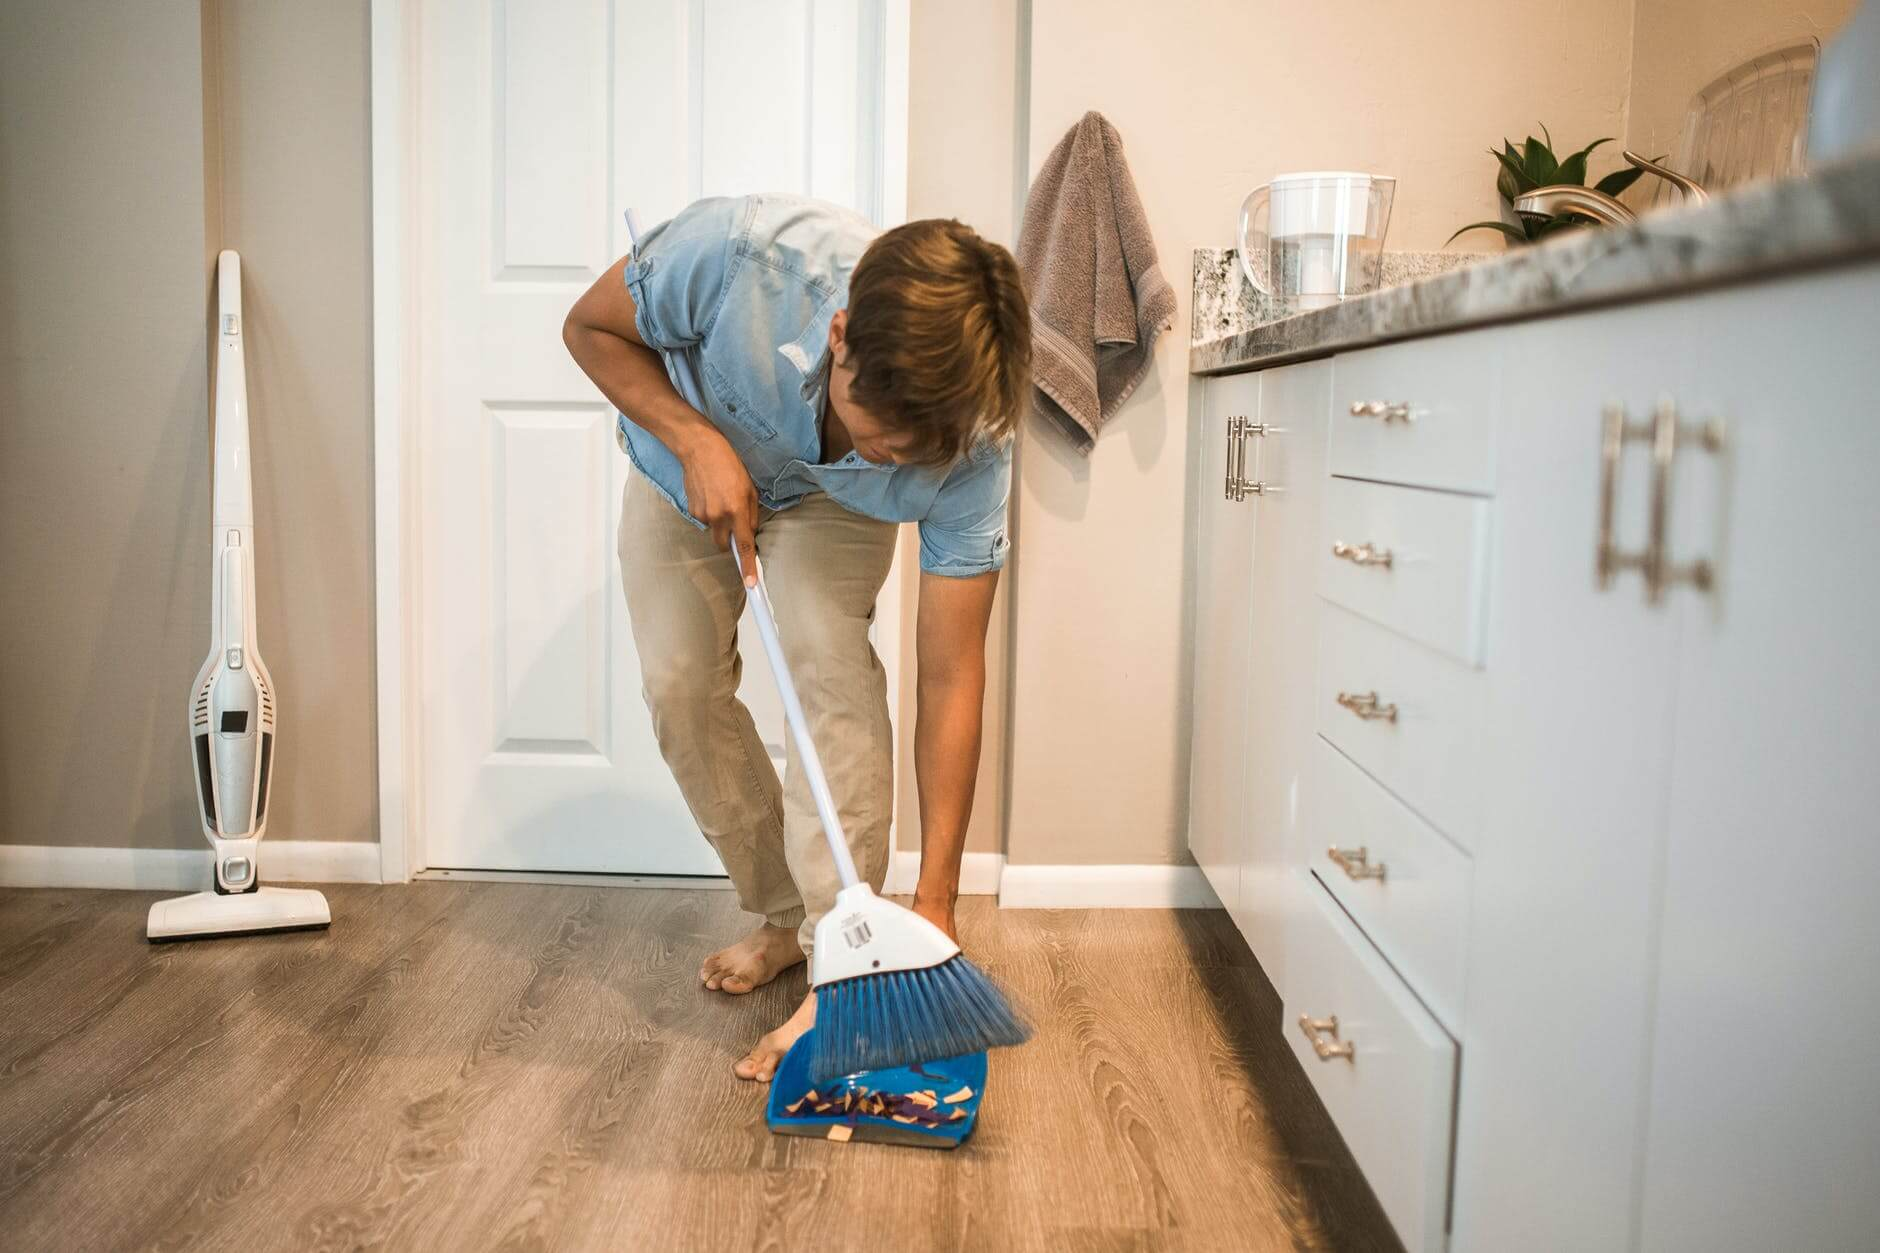 House cleaning service 3